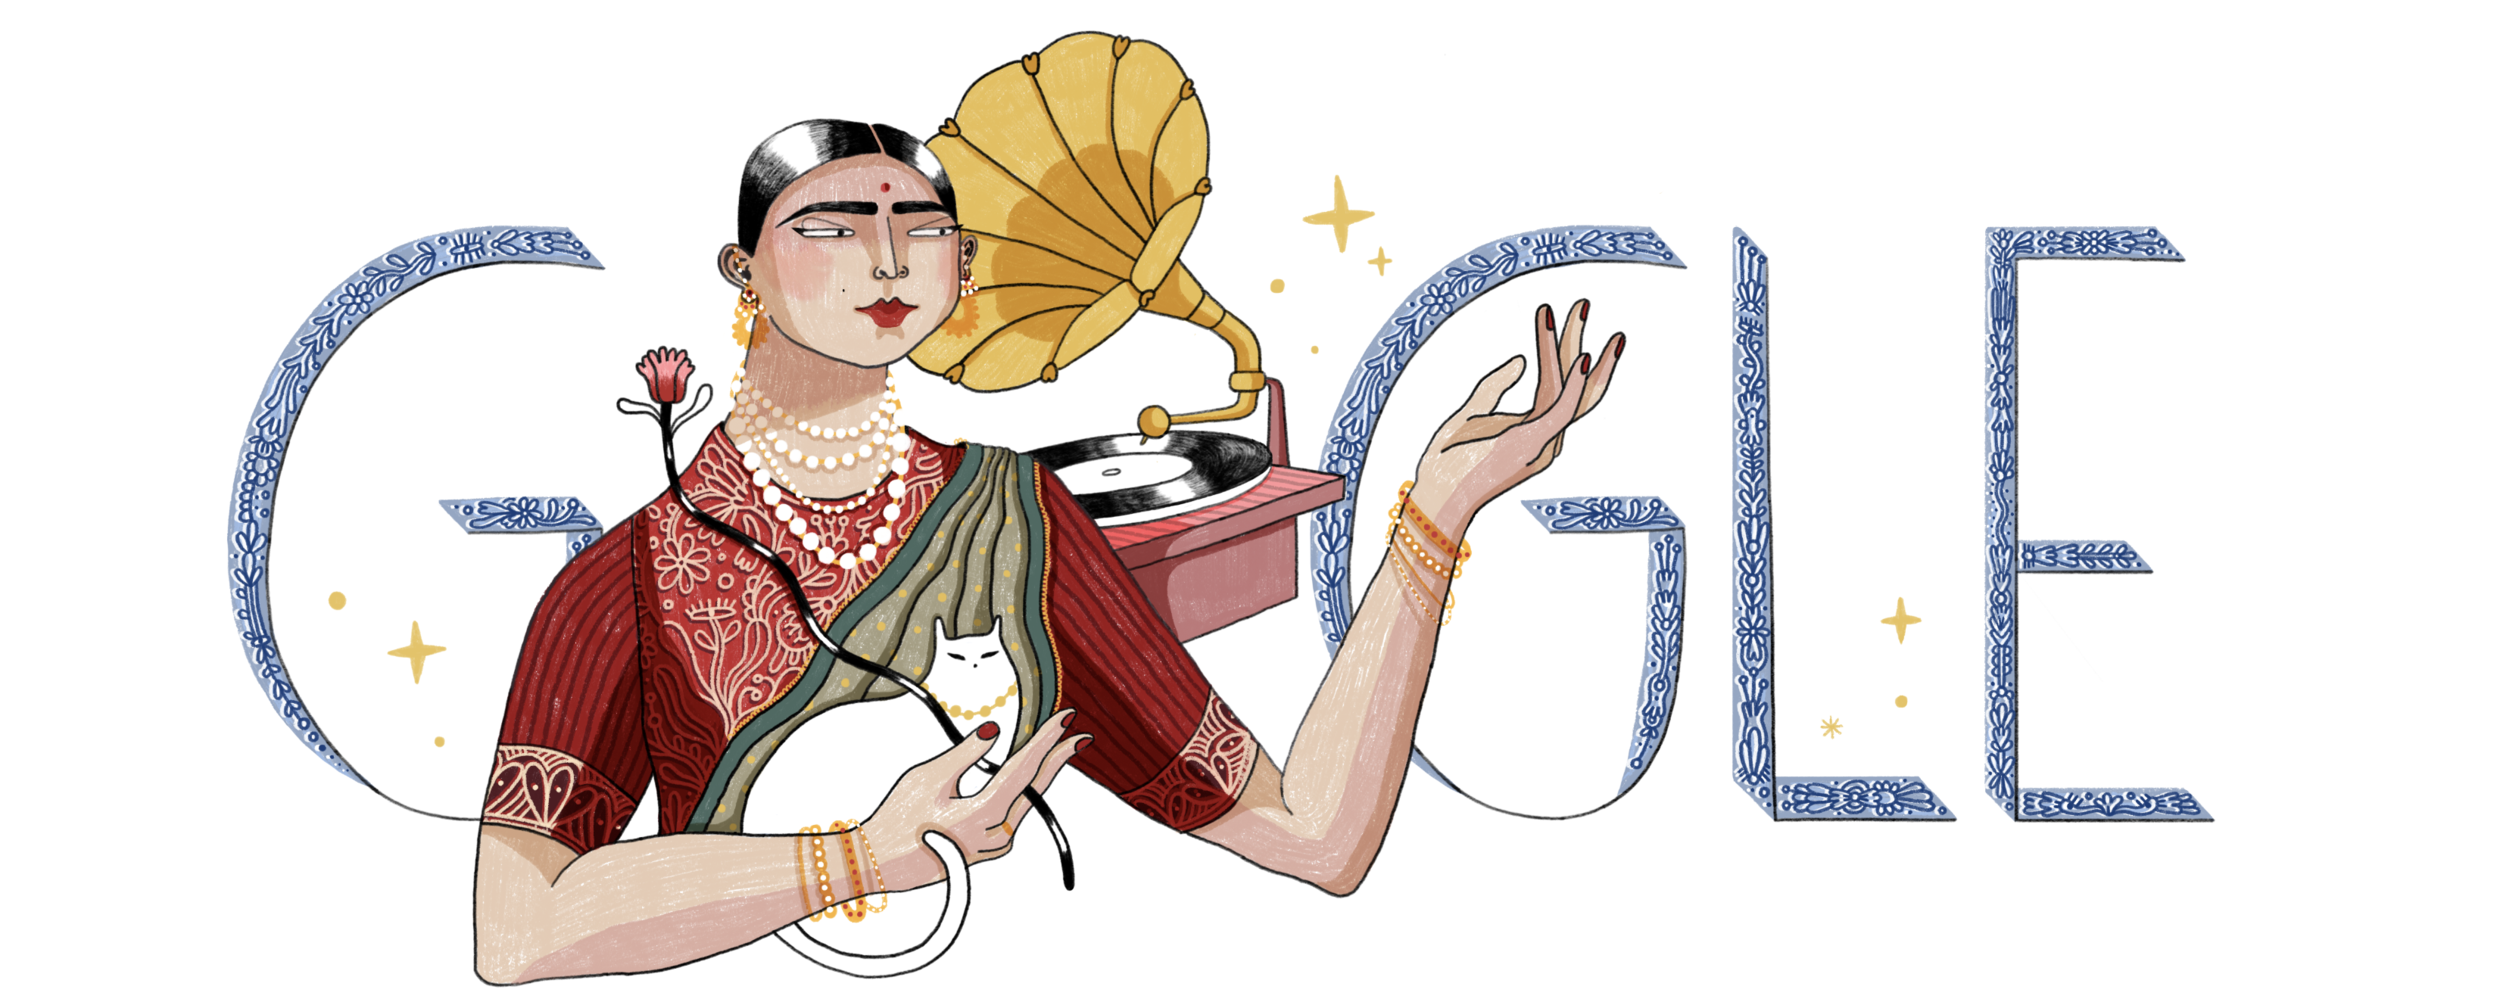 Google Doodle for Gauhar Jaan's 145th Birthday